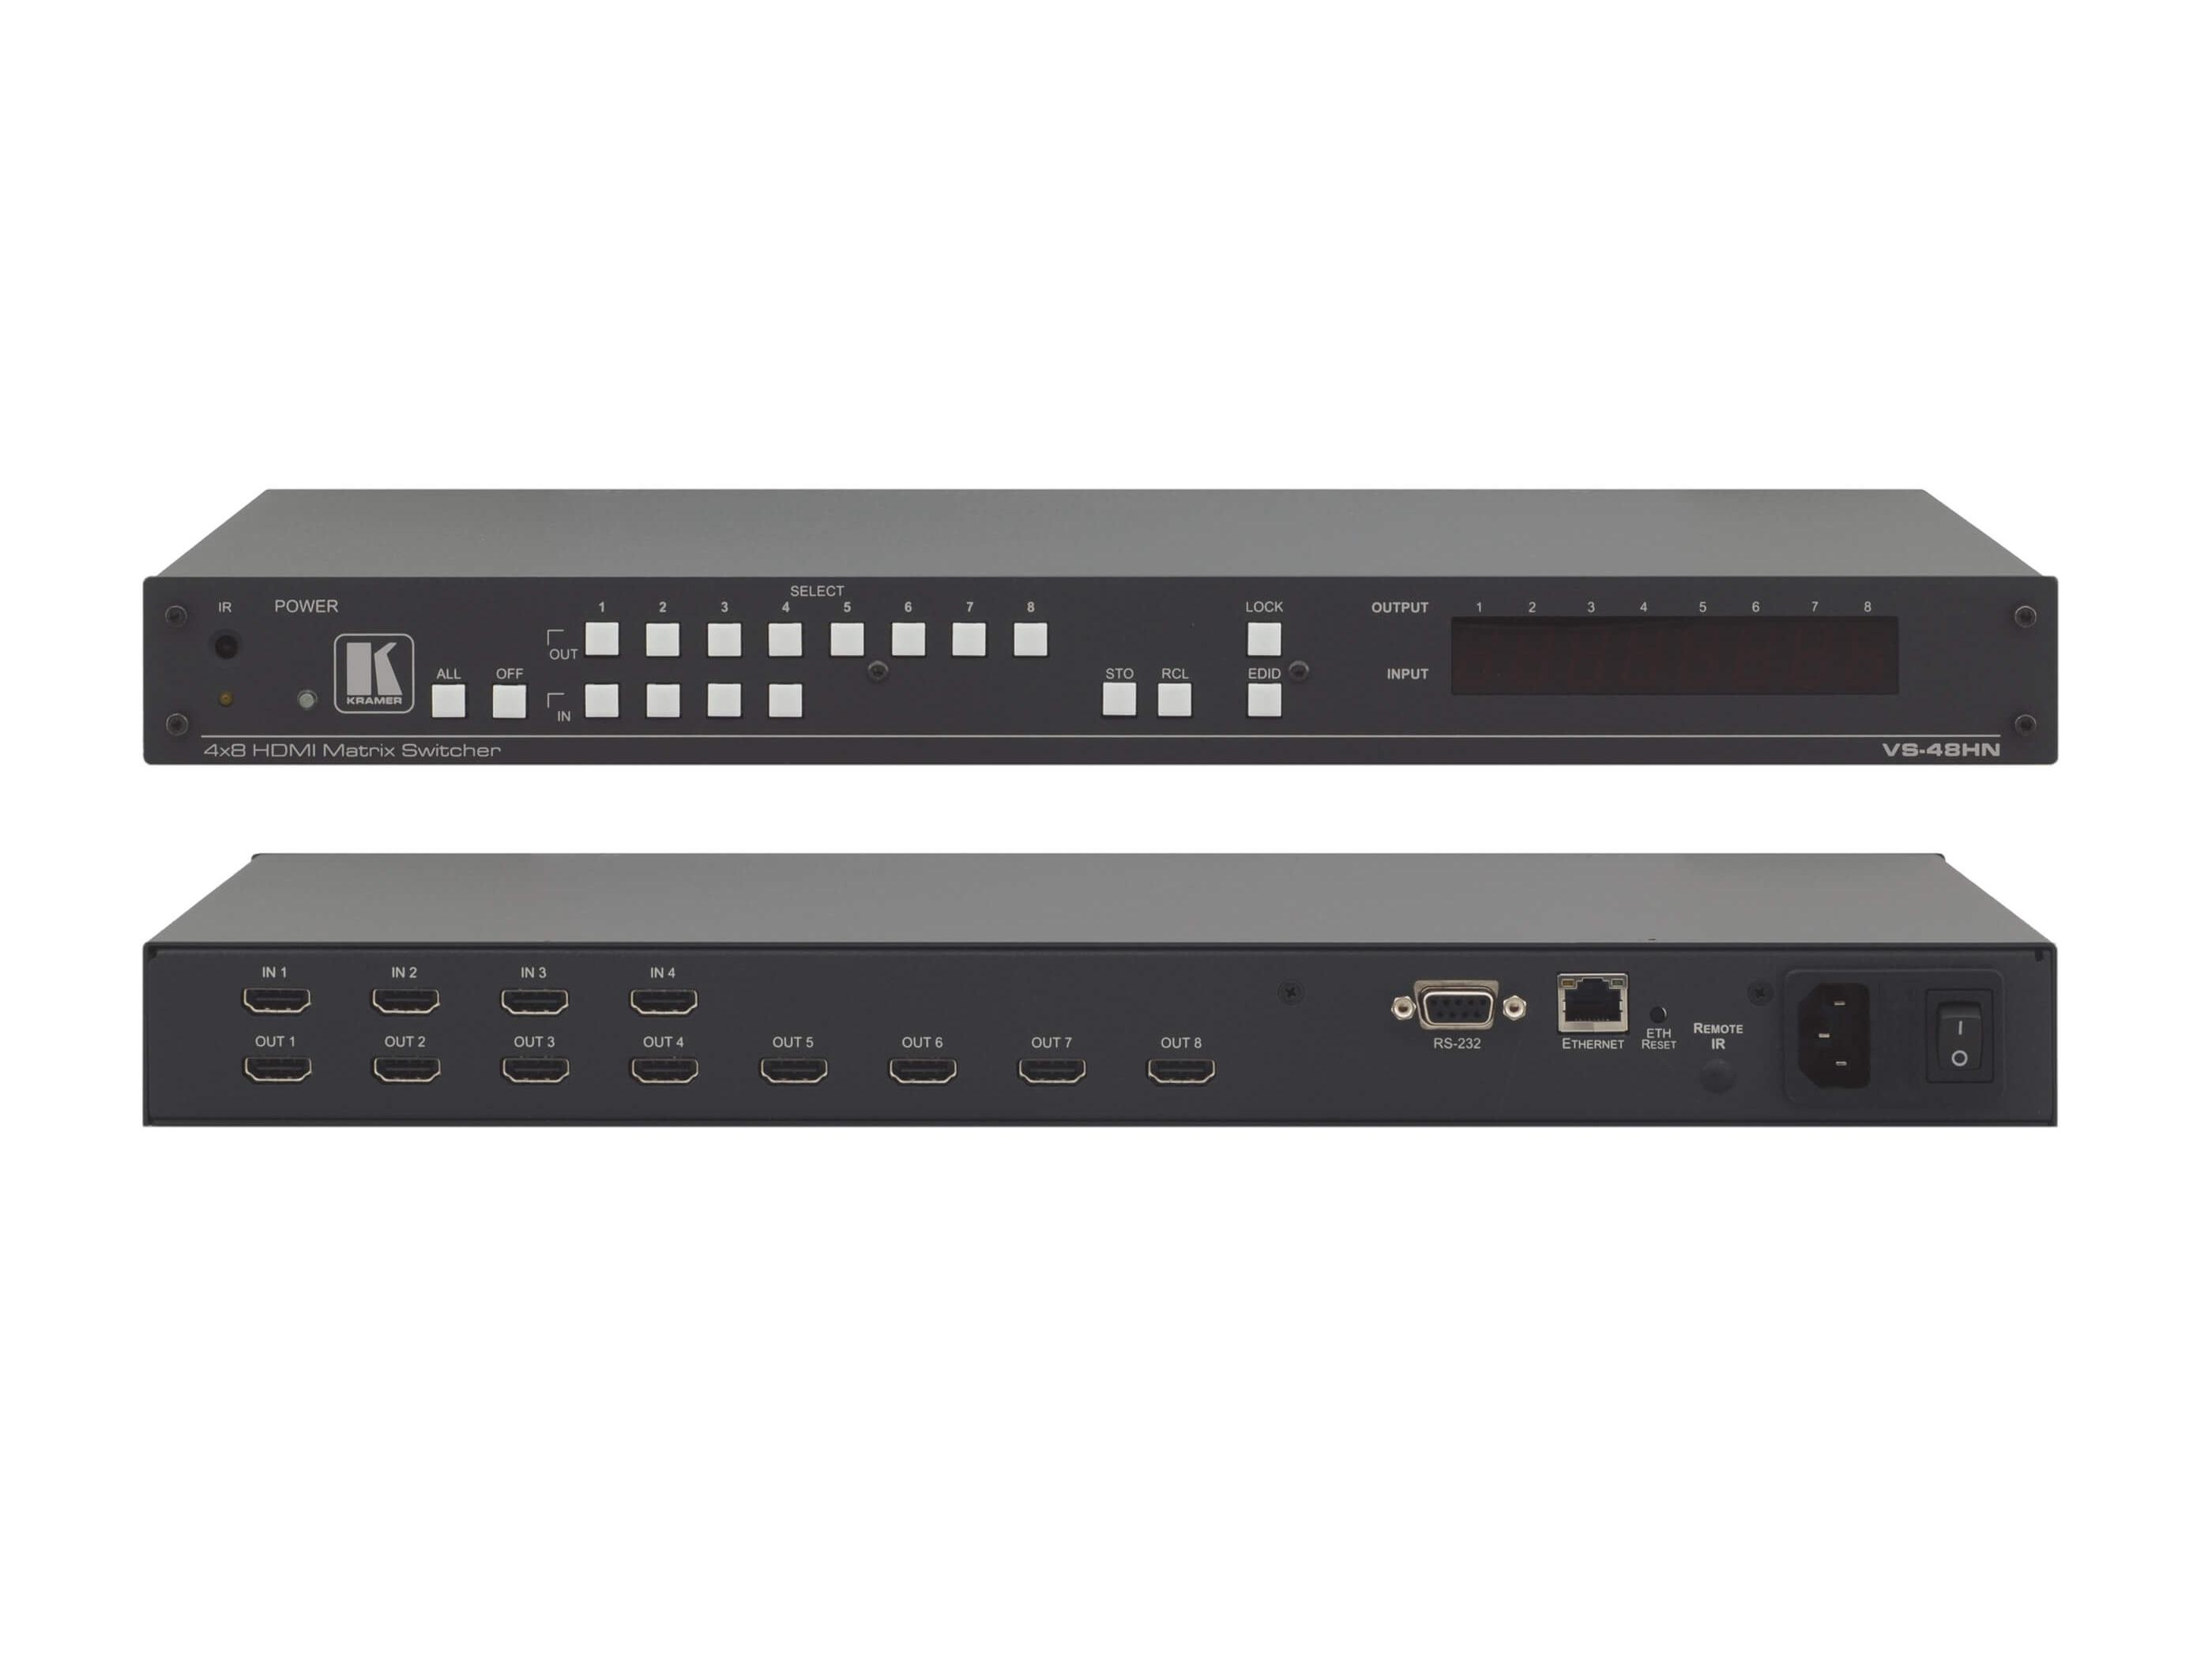 VS-48HN 4x8 HDMI Matrix Switcher by Kramer